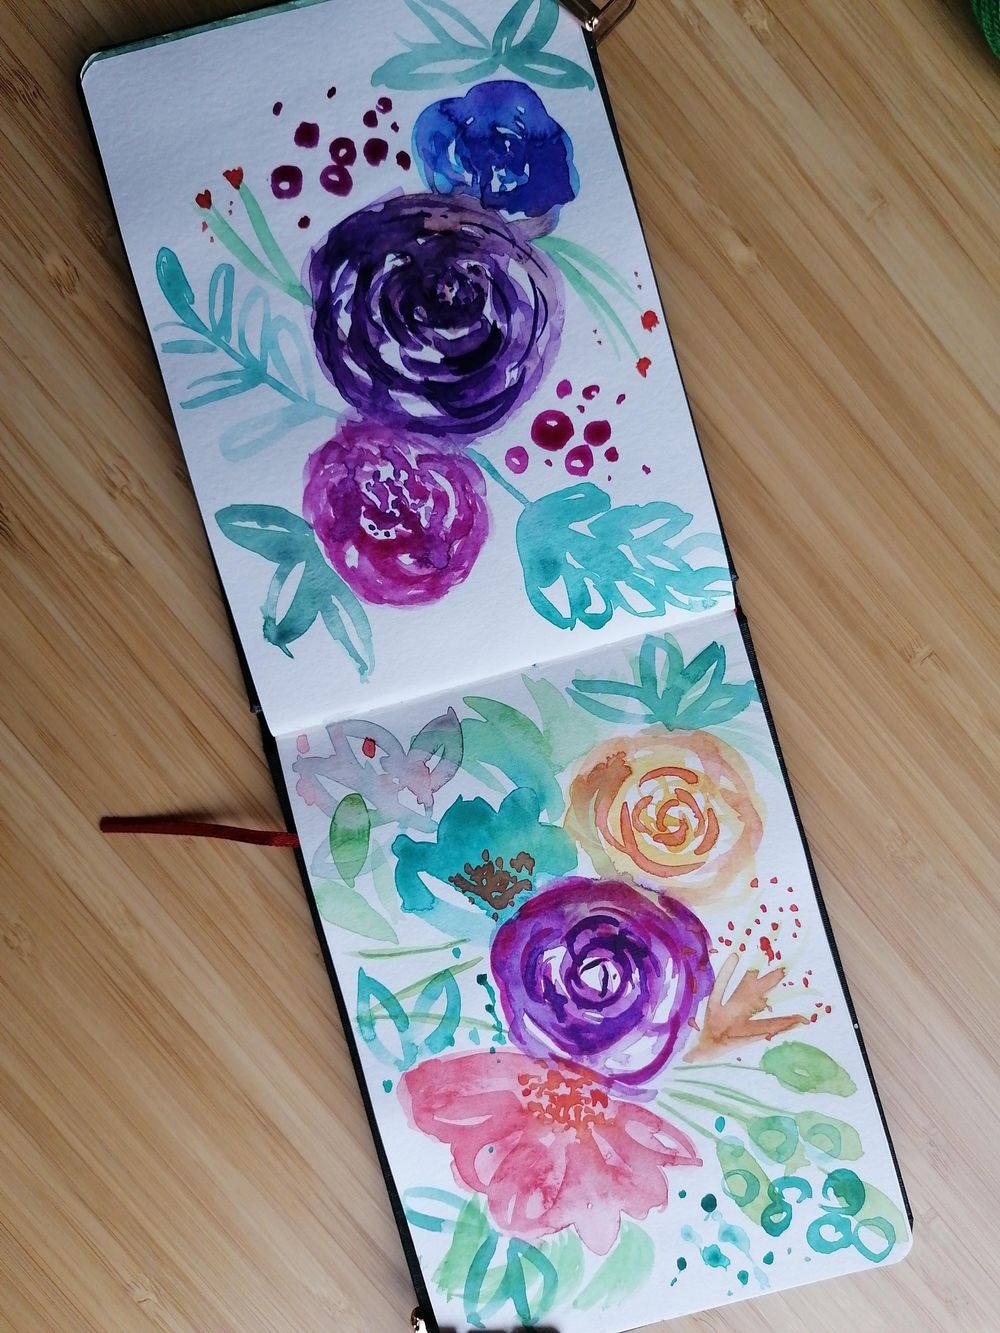 Loose watercolor florals, flowers & butterflies - image 4 - student project